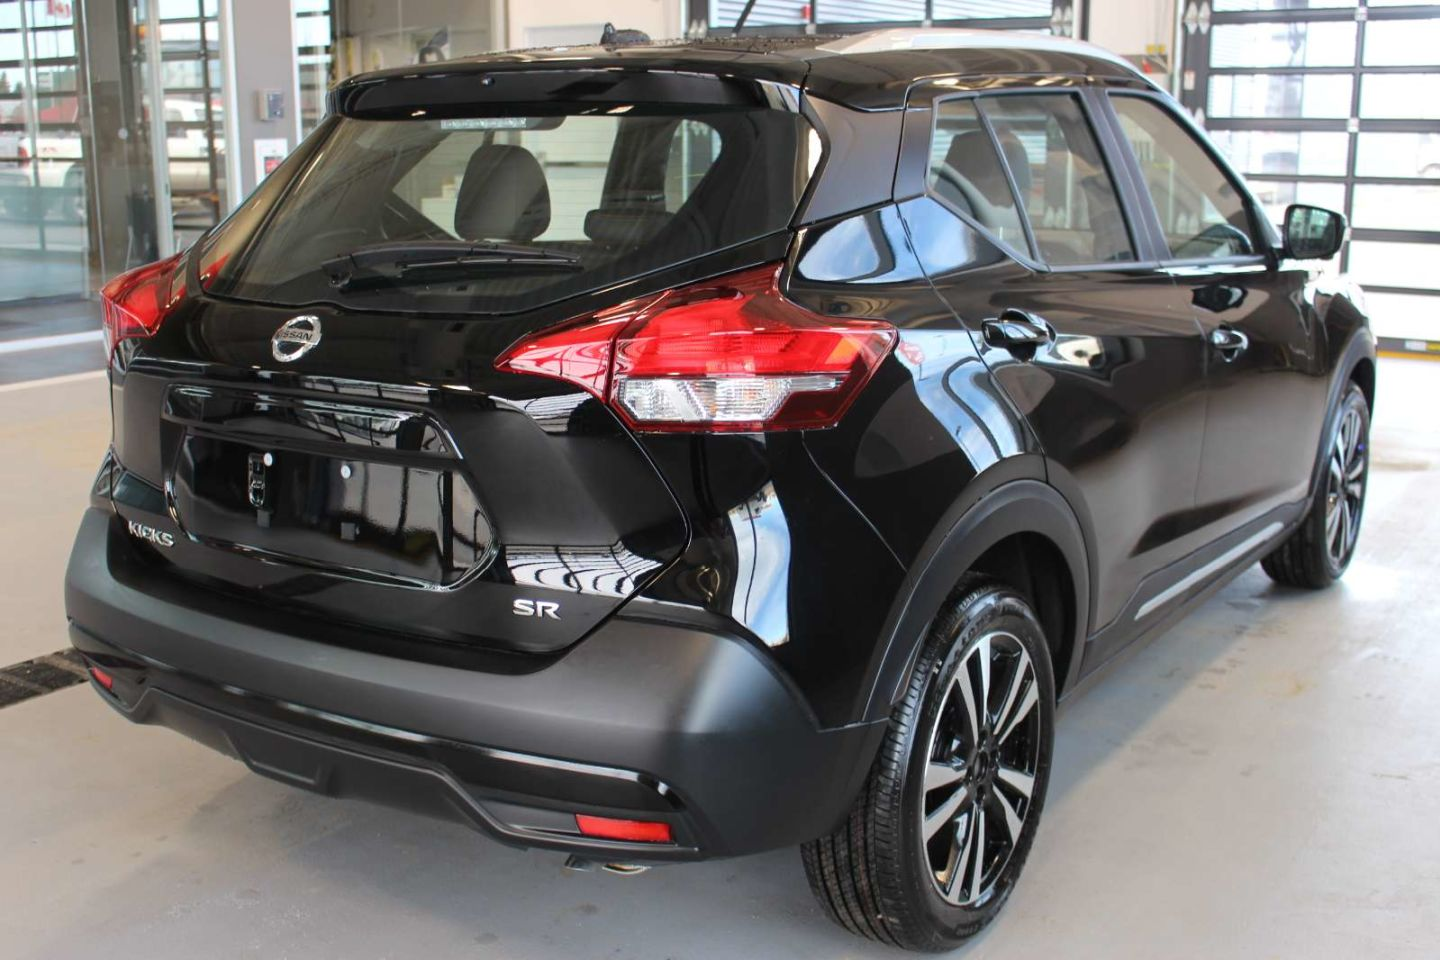 2019 Nissan Kicks SR for sale in Spruce Grove, Alberta